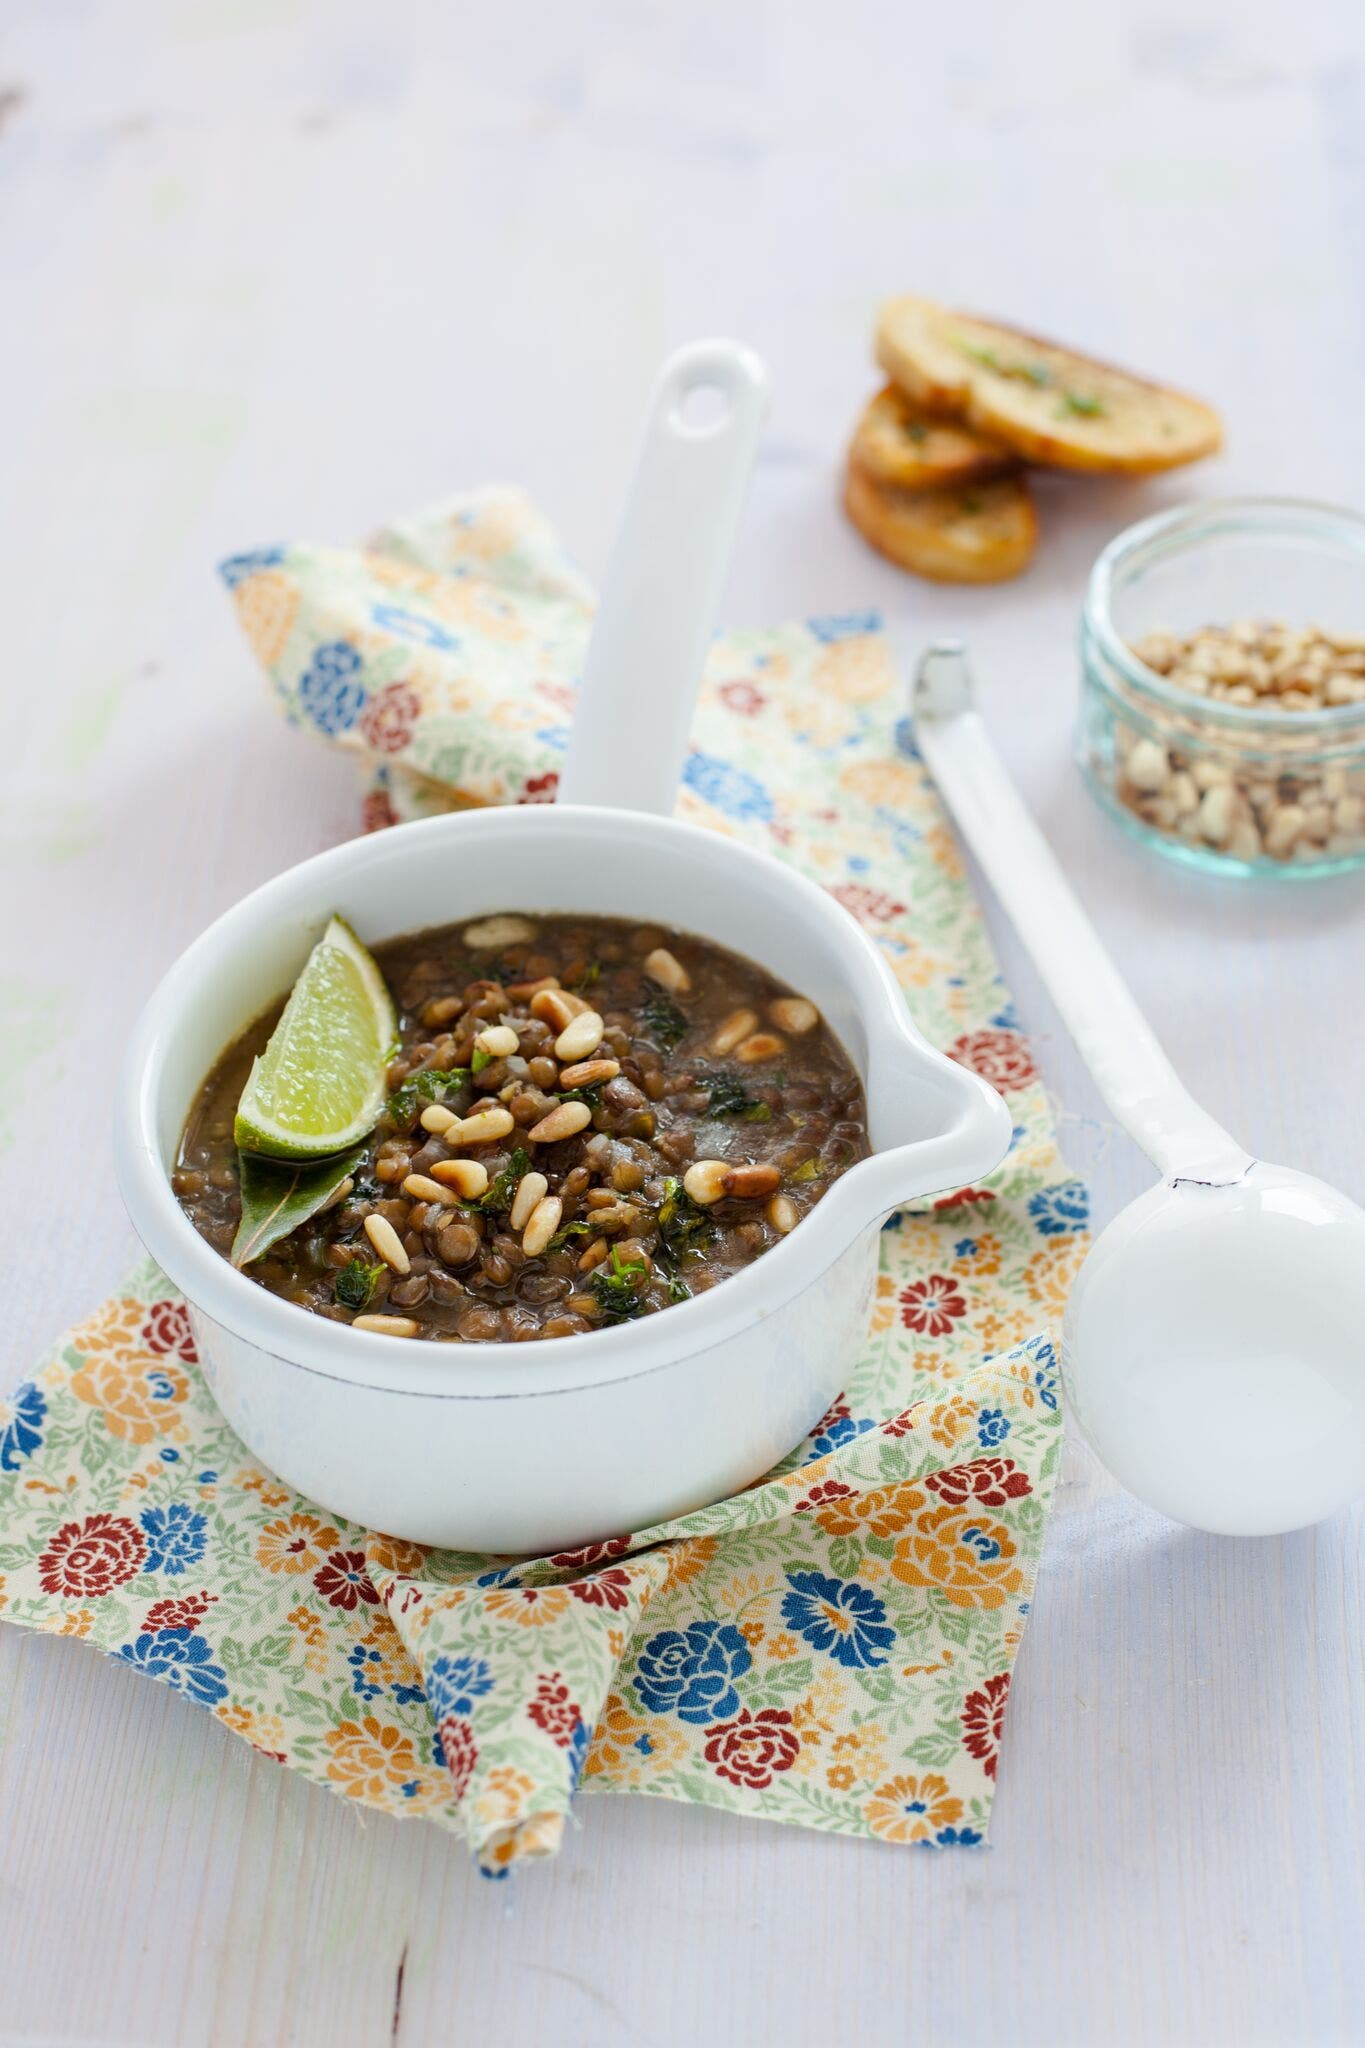 Not only is brown lentil soup nutritious, importantly for Ramadan cooking, it is quick and easy to make. (sudeshna)